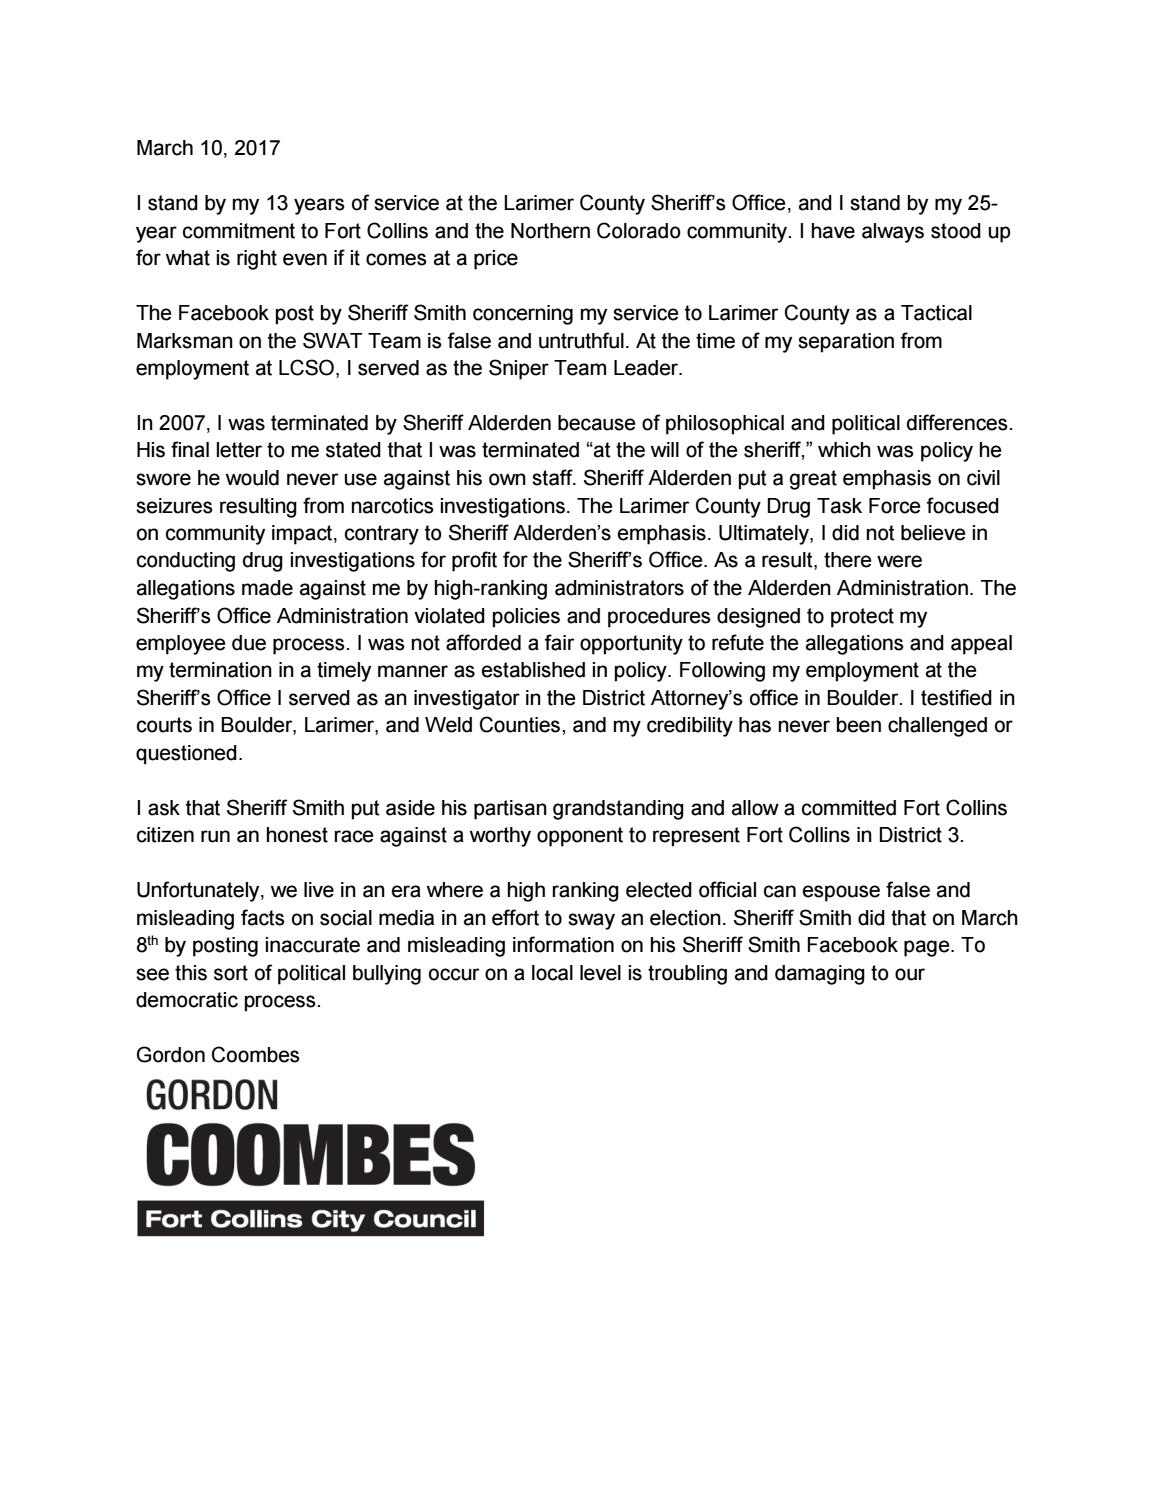 Coombes response to Smith Facebook post by The Coloradoan